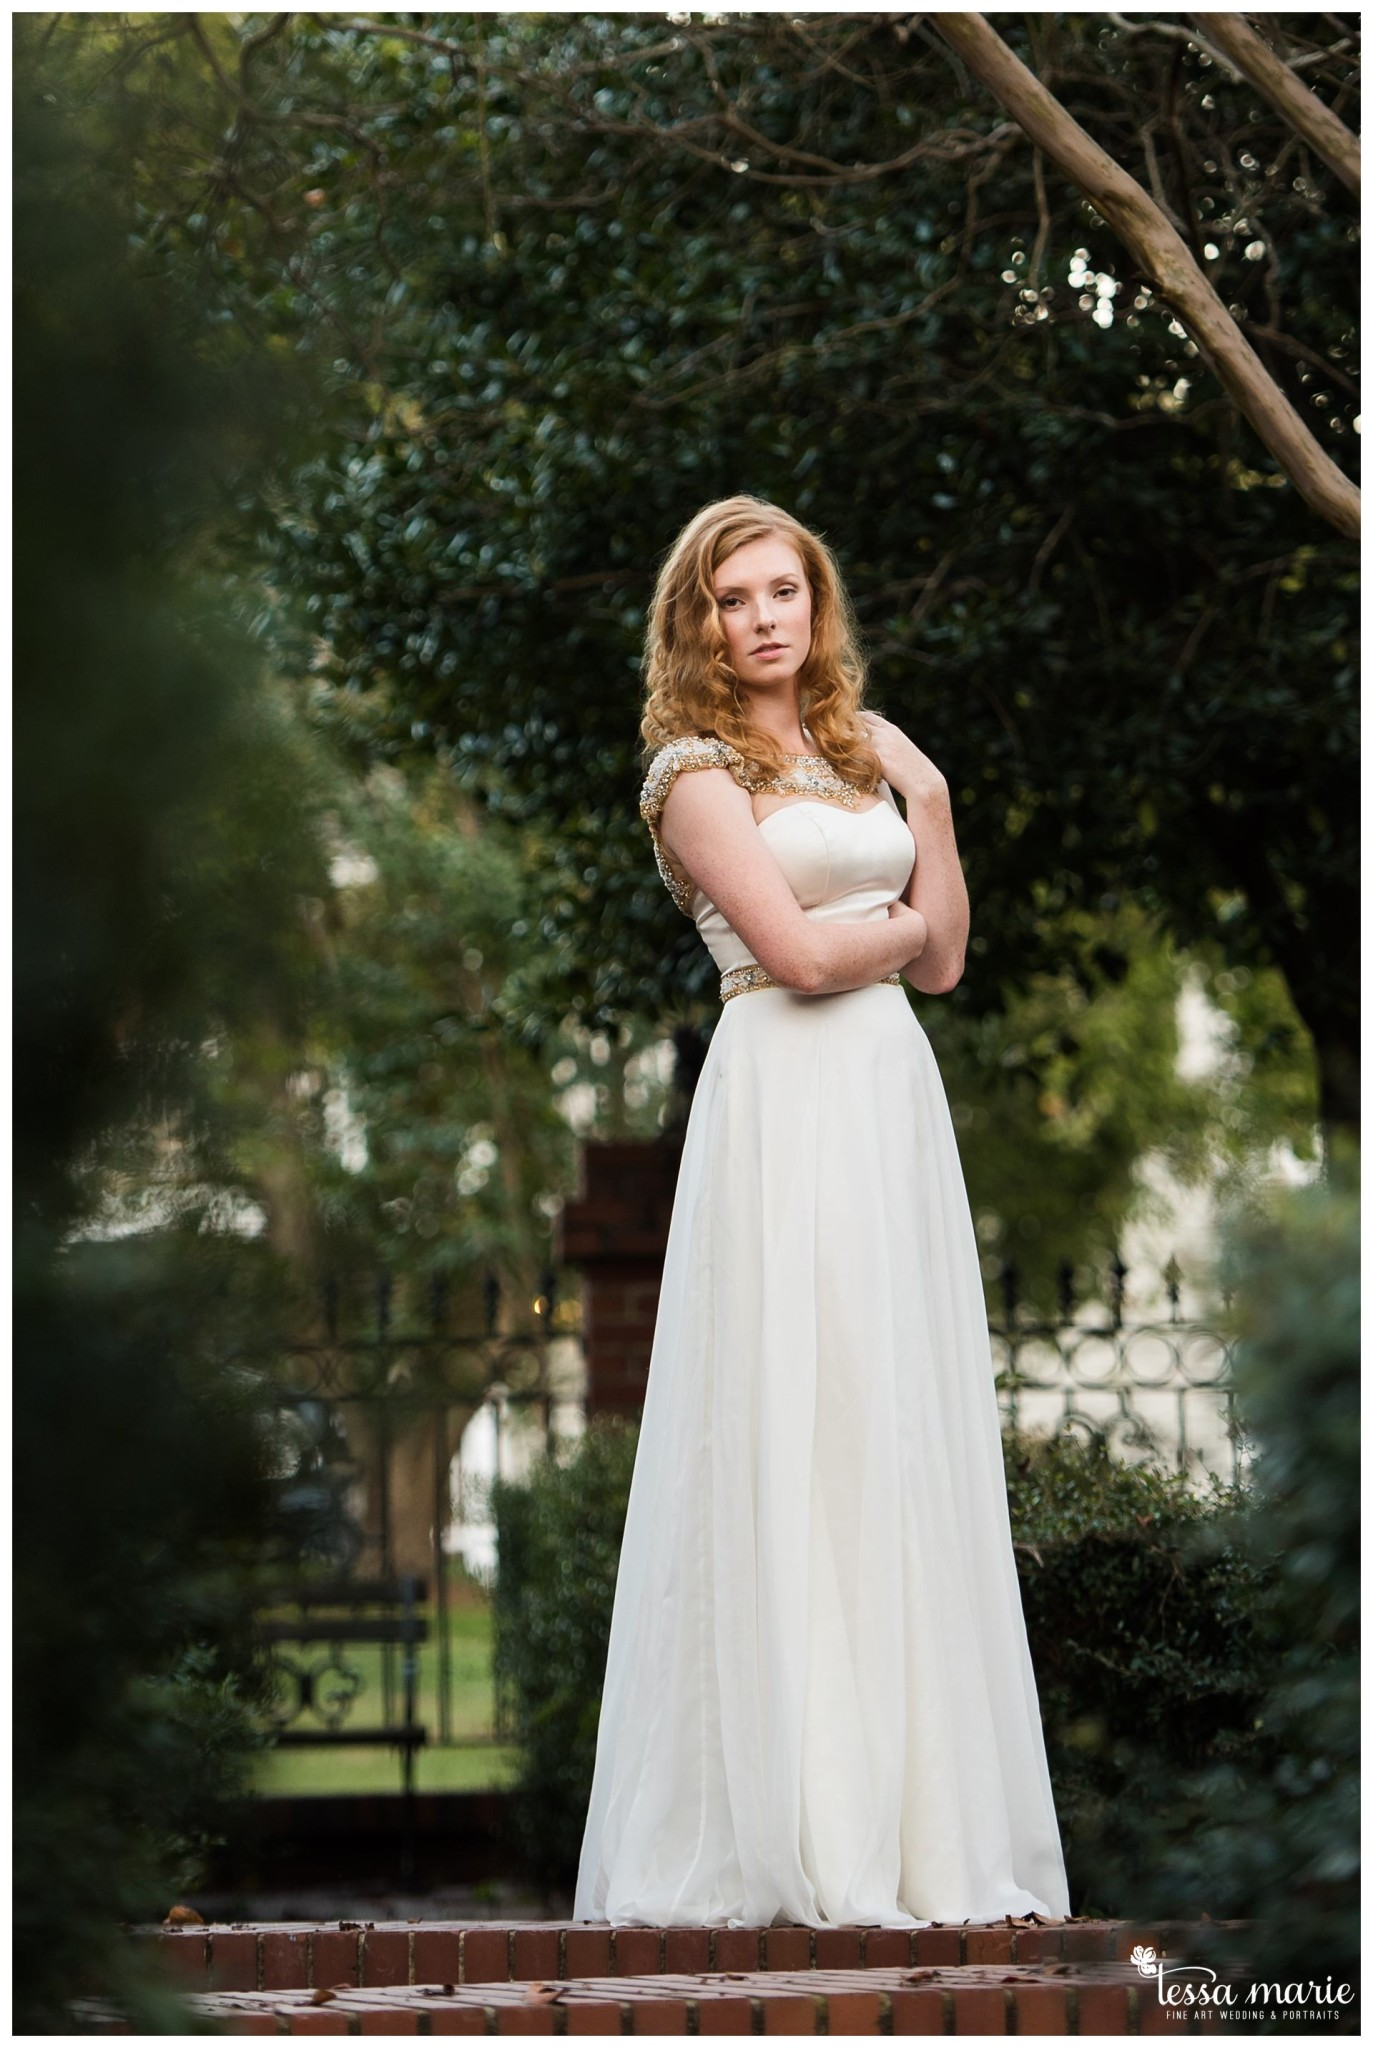 tessa_marie_weddings_legacy_story_focused_wedding_pictures_atlanta_wedding_photographer_family_pictures_portrait_Fine_art_memories_mothers_day_spring_moments_0314